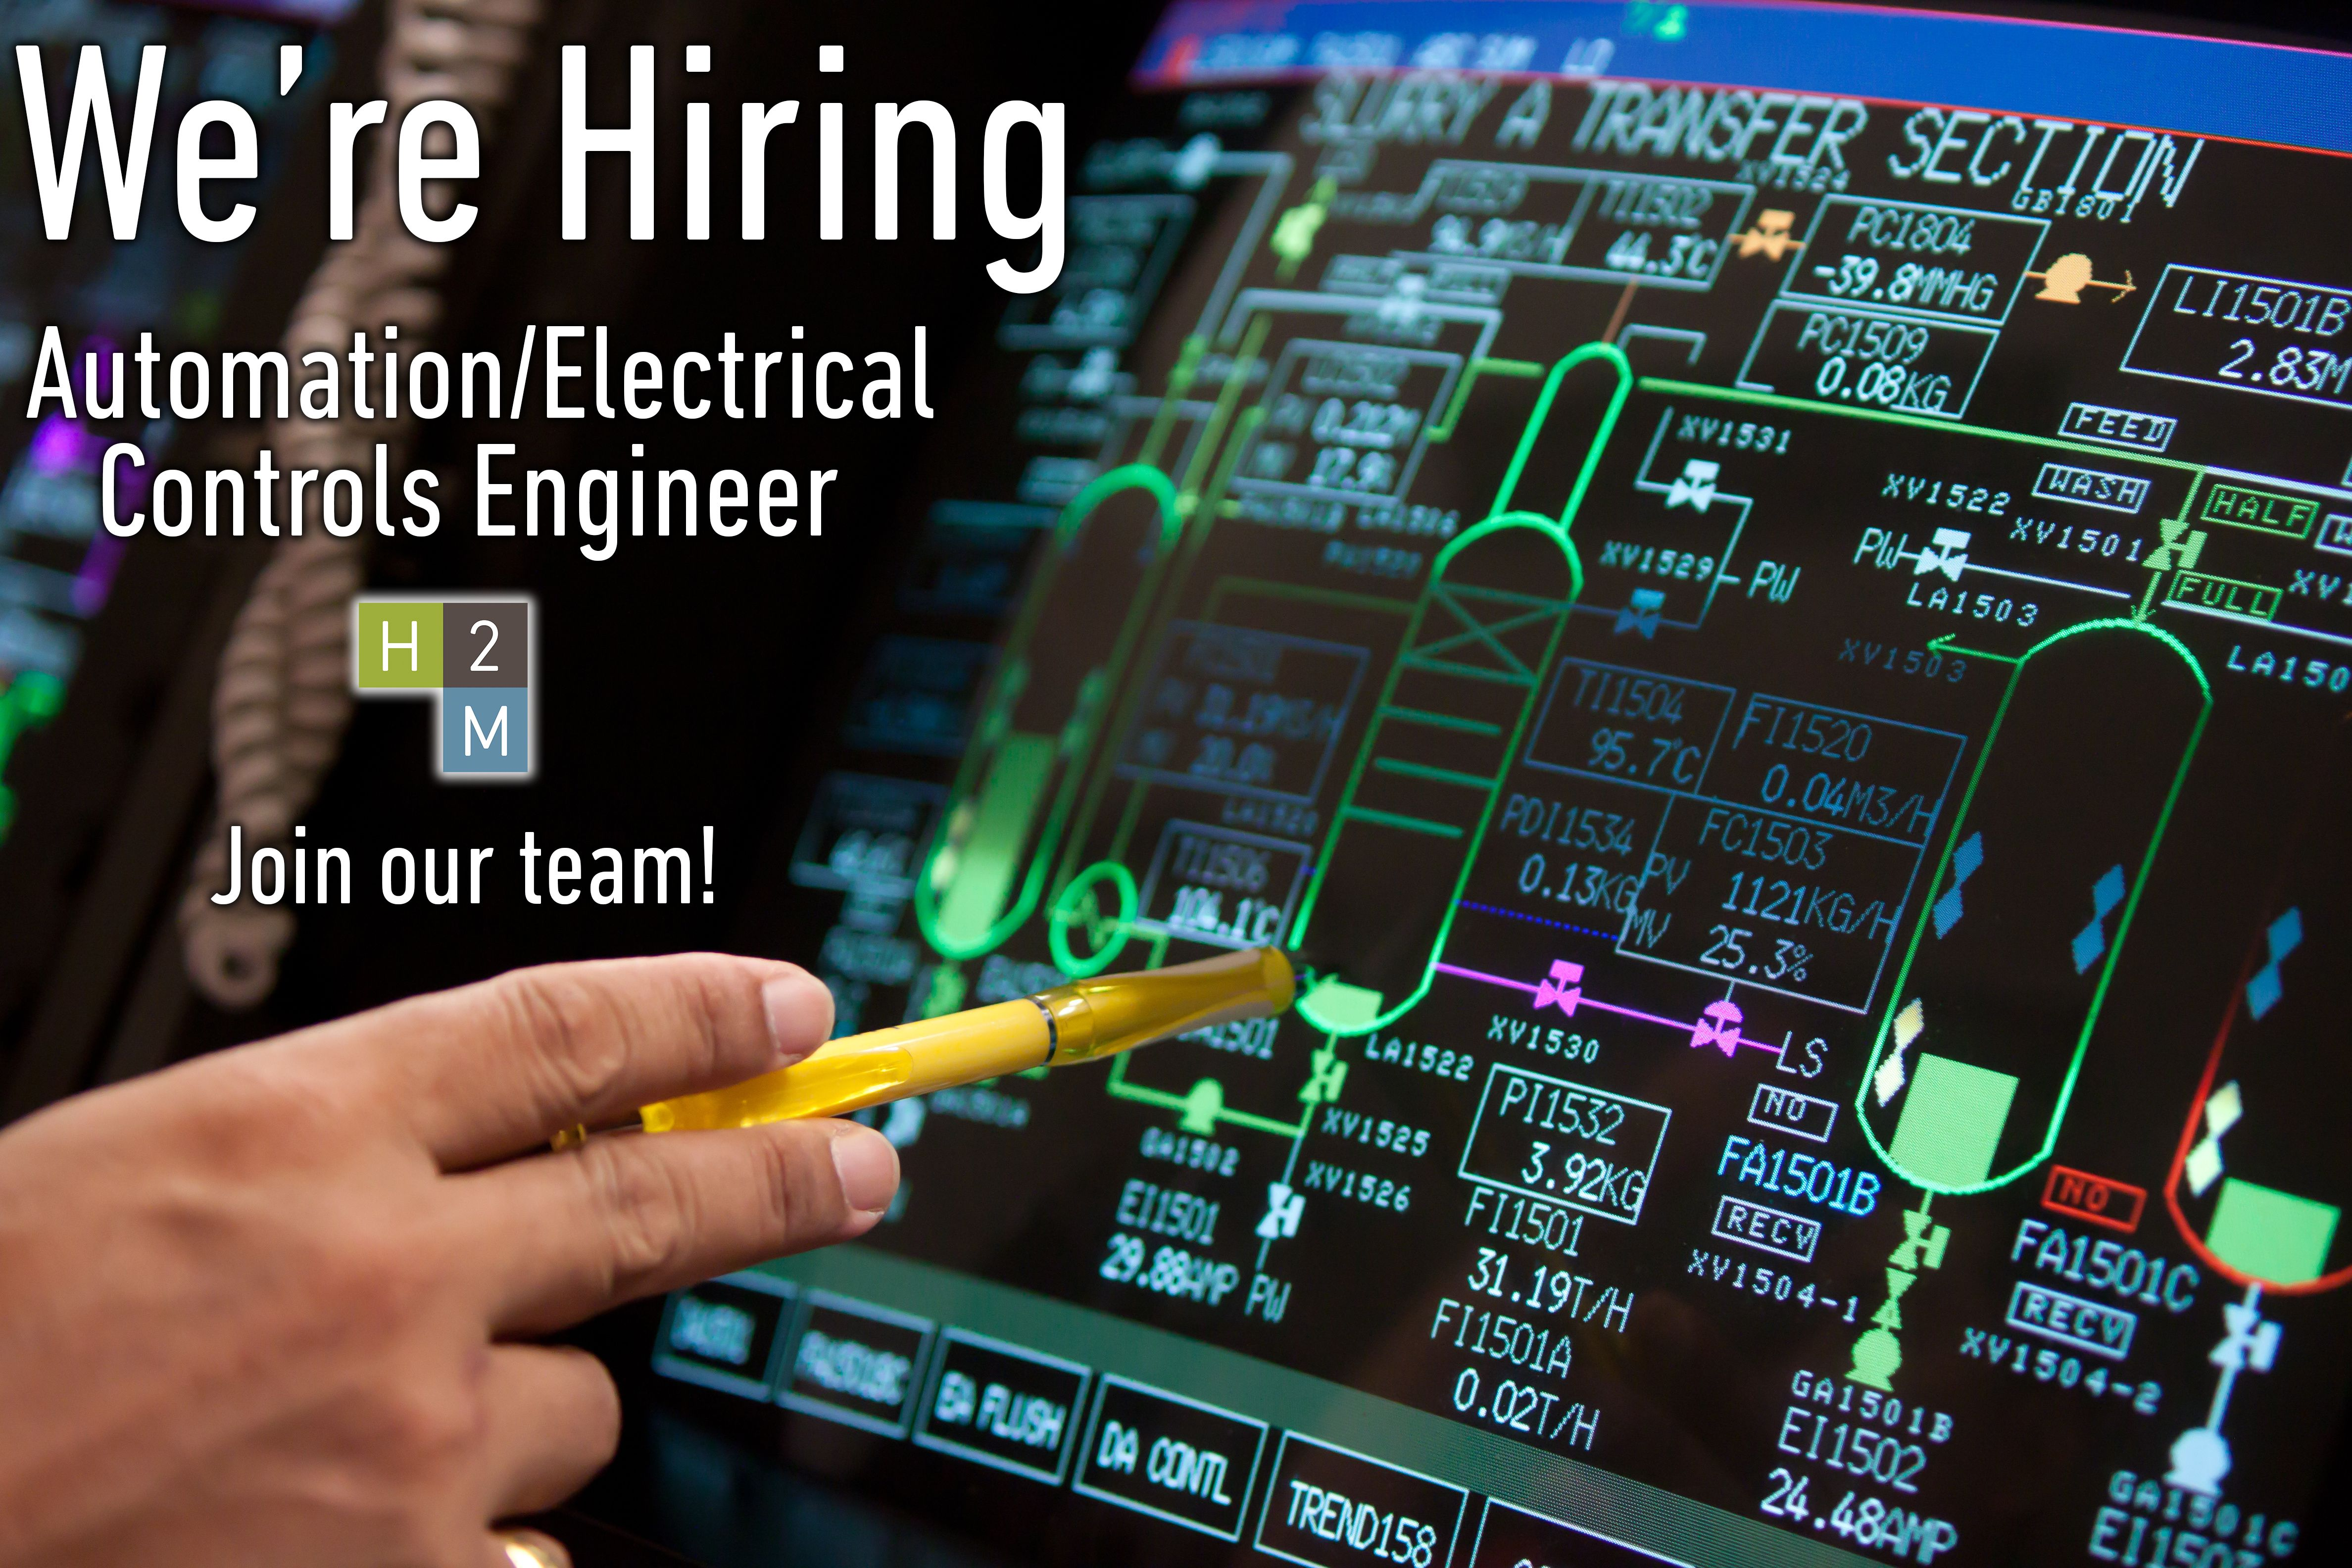 WeRe Hiring Automation Electrical Controls Engineer Location